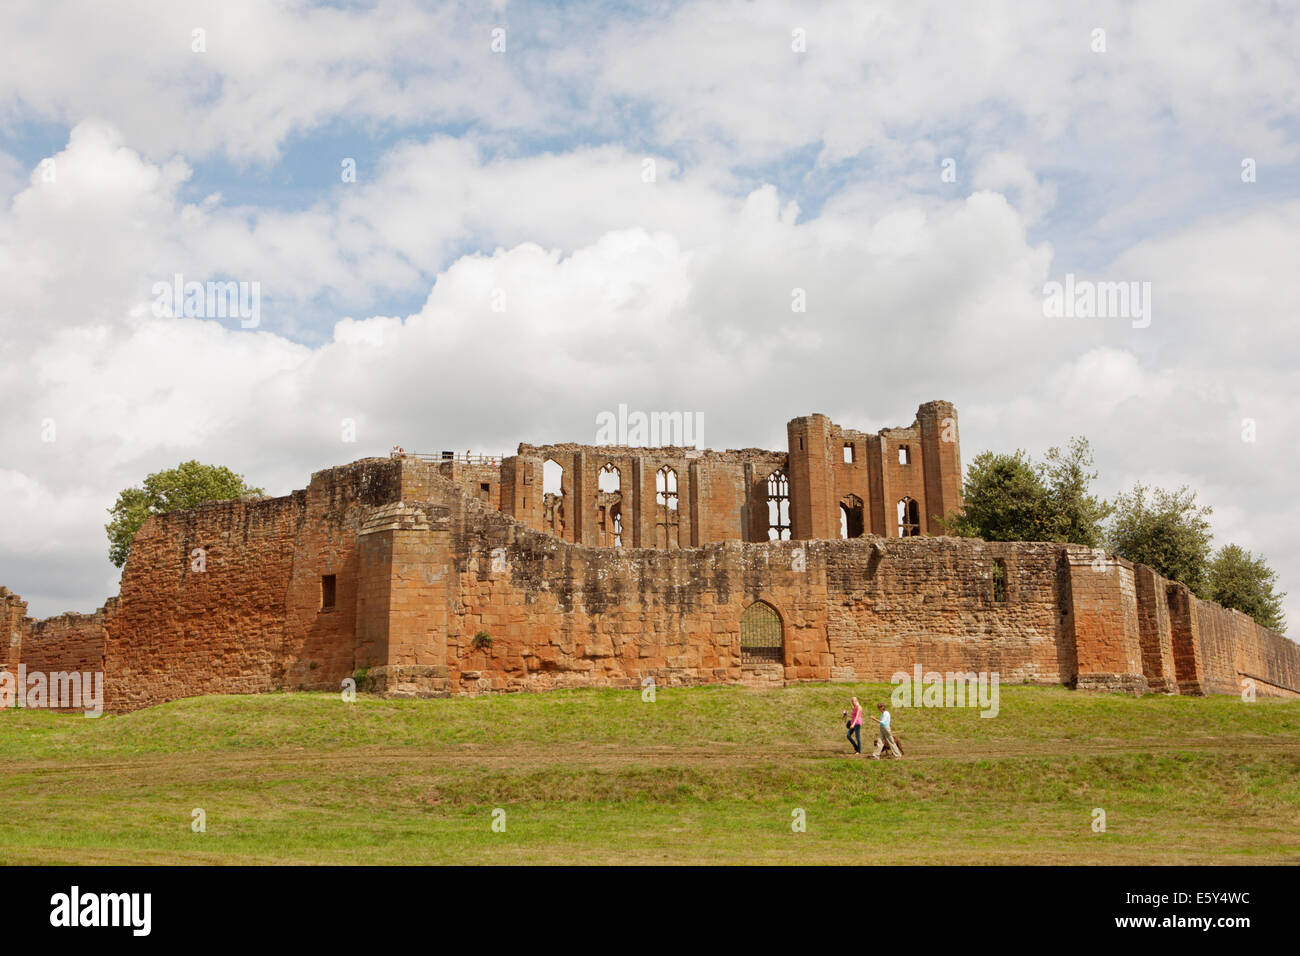 KENILWORTH CASTLE AND PEOPLE WALKING AROUND - Stock Image